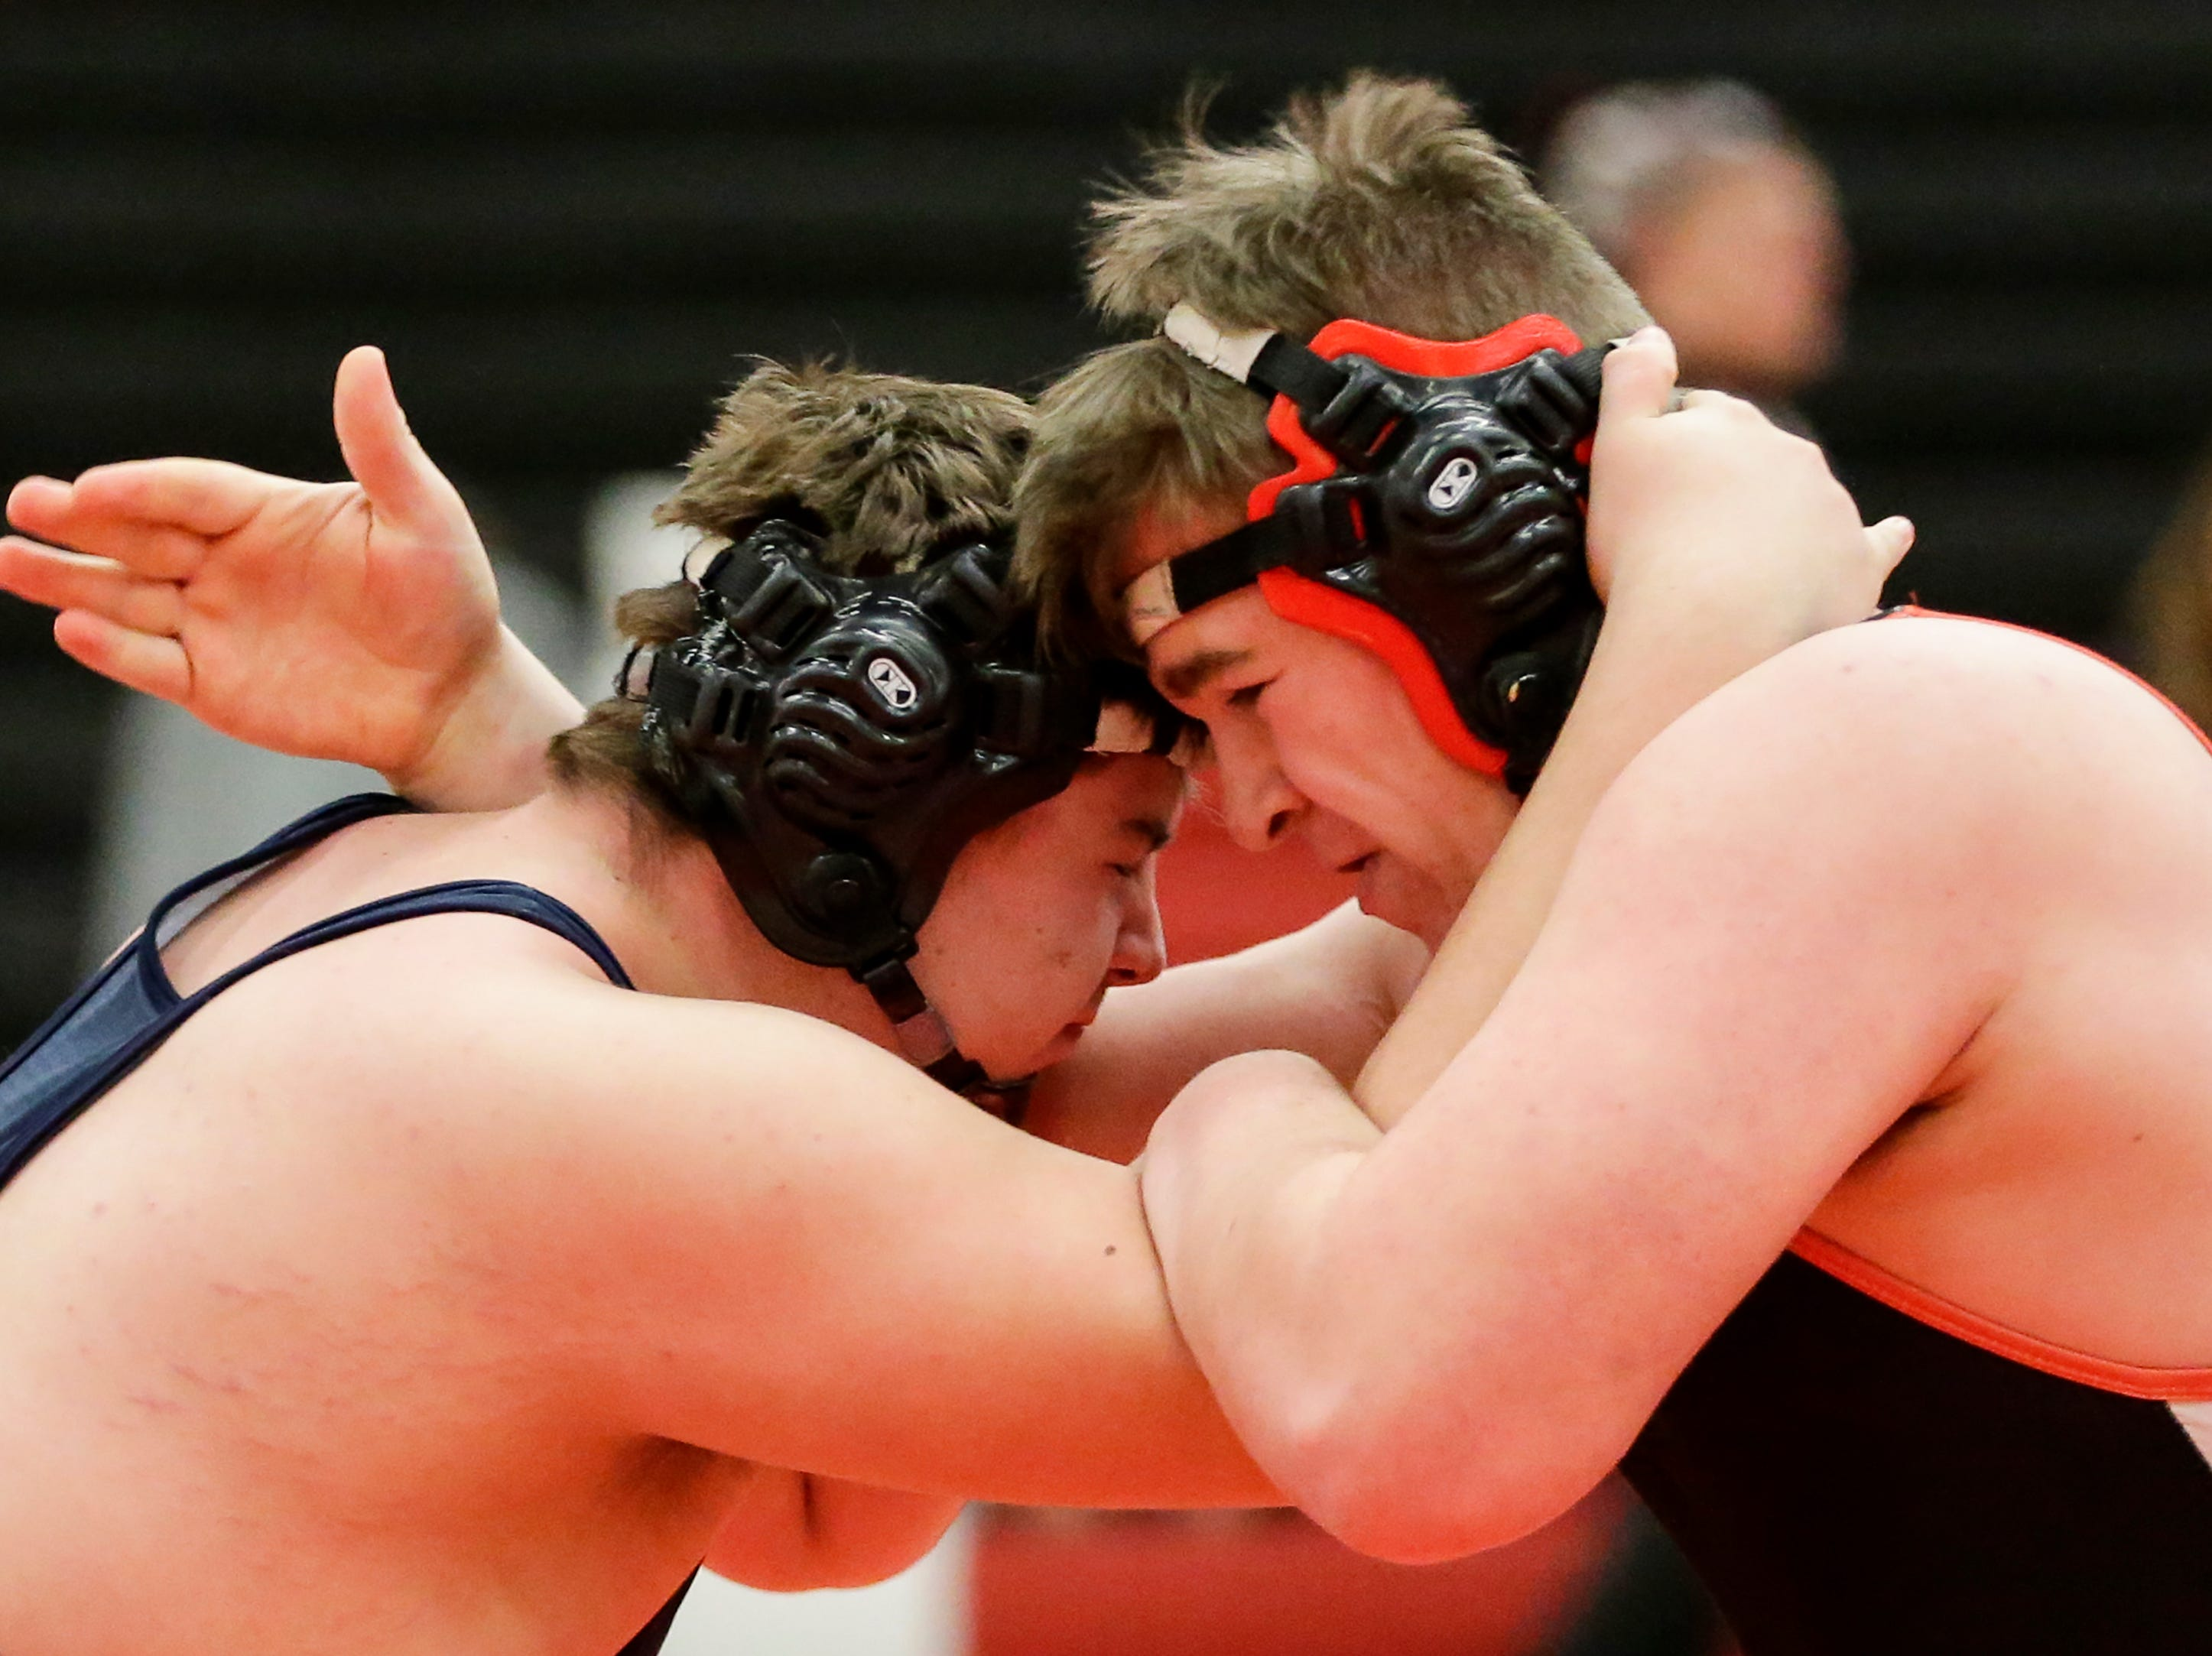 Manitowoc Lincoln's Jonas Gryffin wrestles Germantown's Joe Inga in the 285 weight class during the WIAA D1 Regionals at Manitowoc Lincoln High School Saturday, February 9, 2019, in Manitowoc, Wis. Joshua Clark/USA TODAY NETWORK-Wisconsin